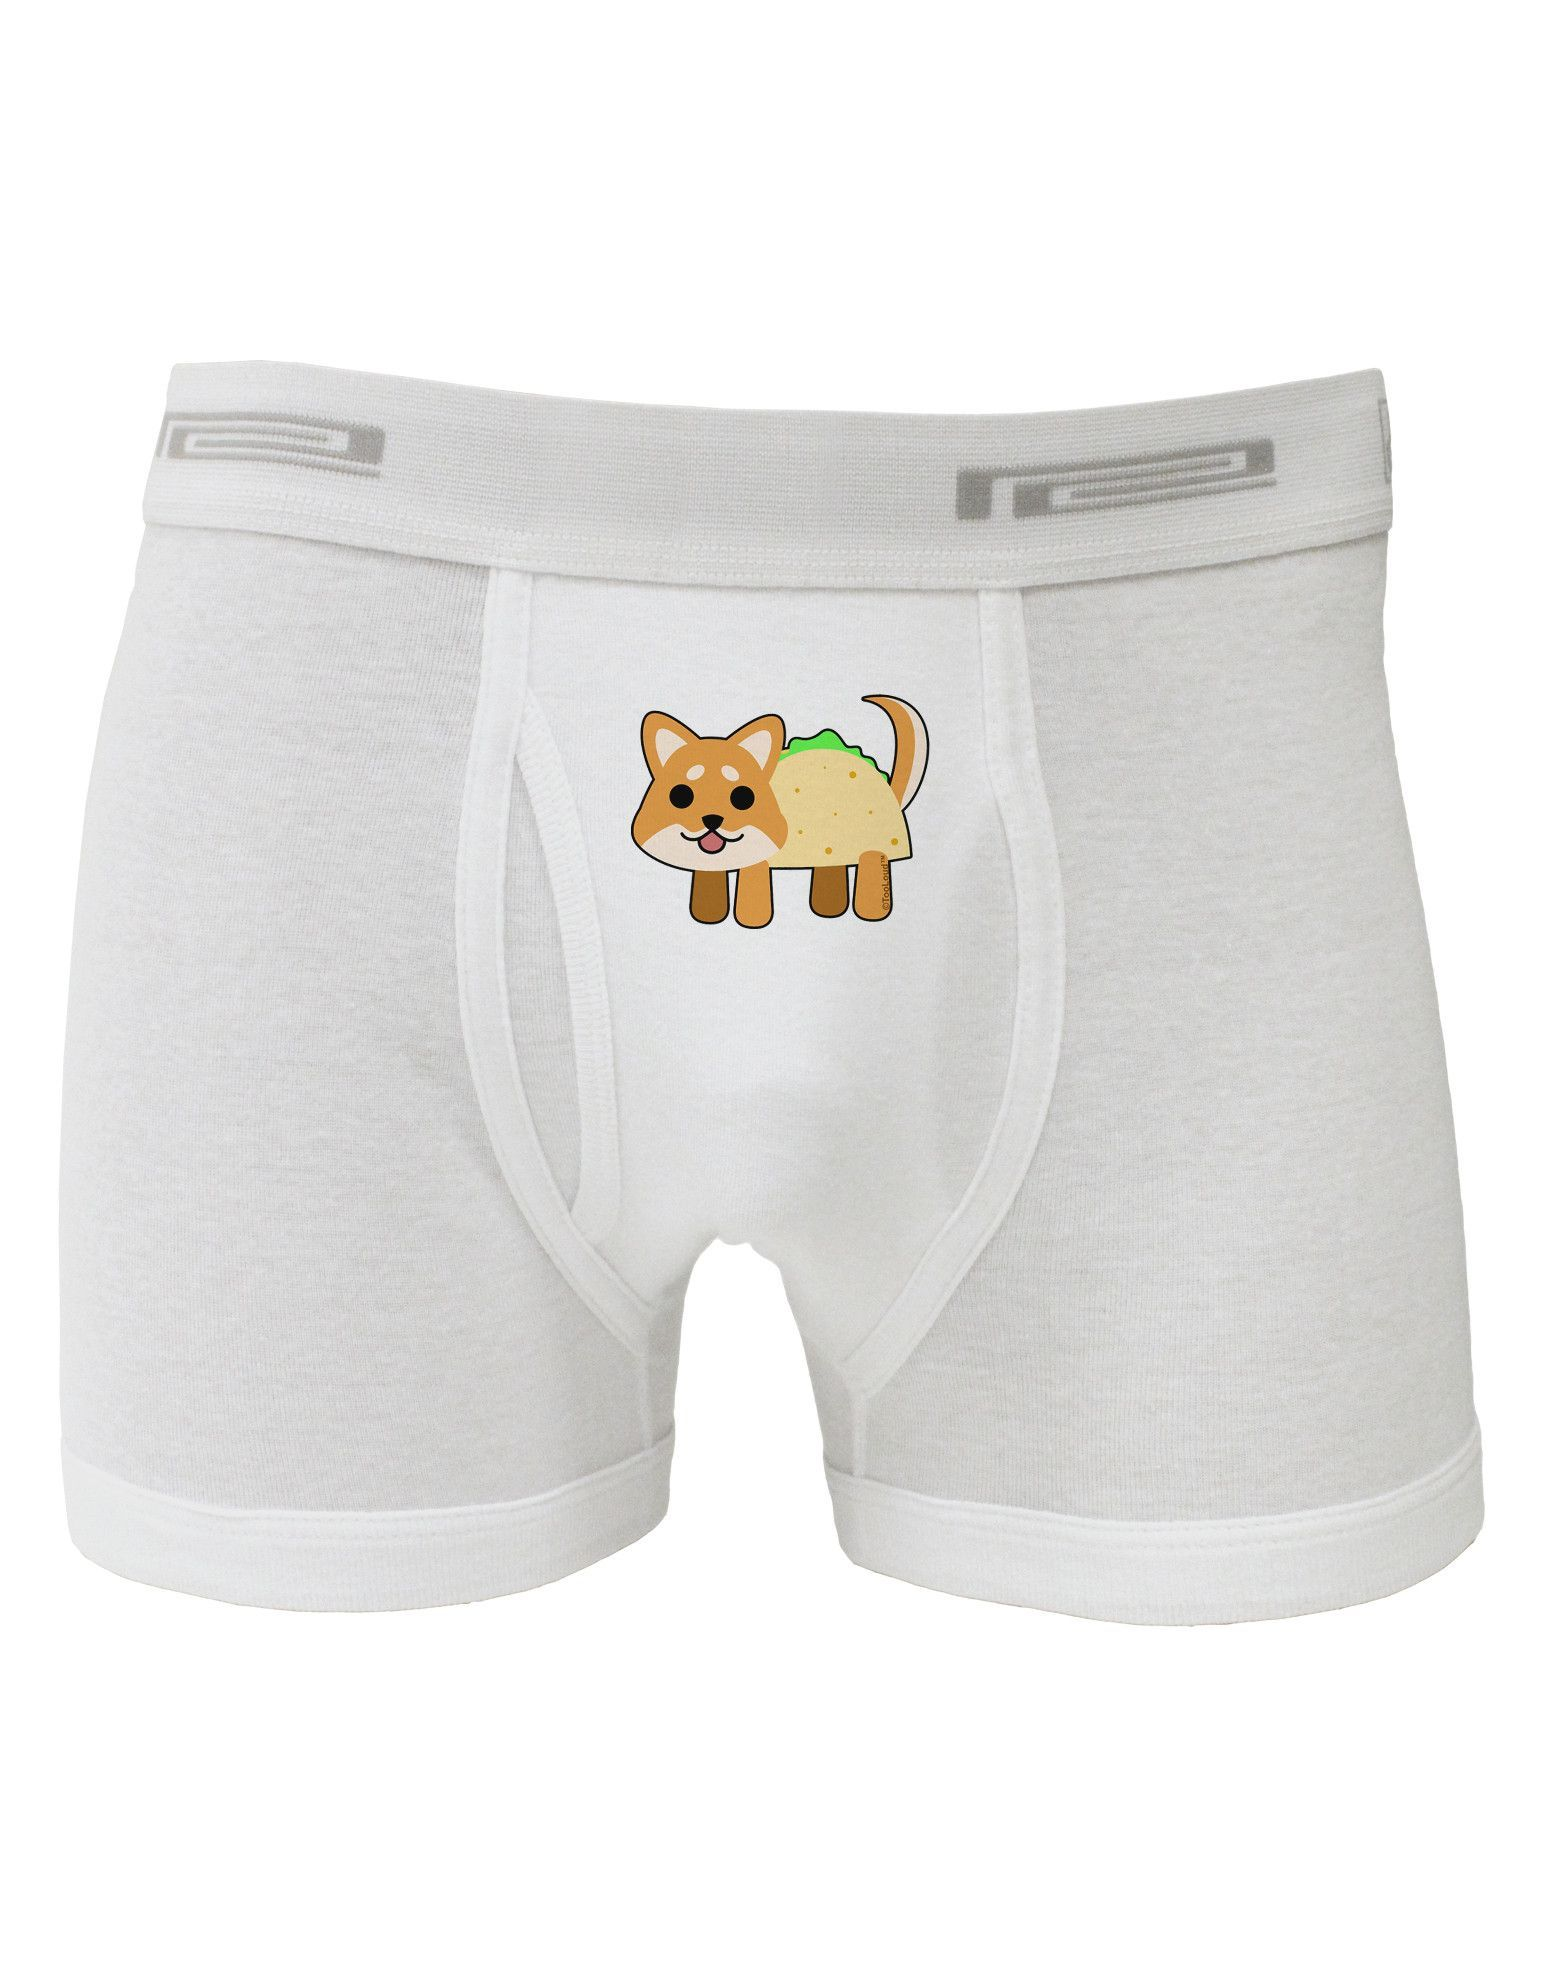 TooLoud Cute Taco Dog Boxer Briefs